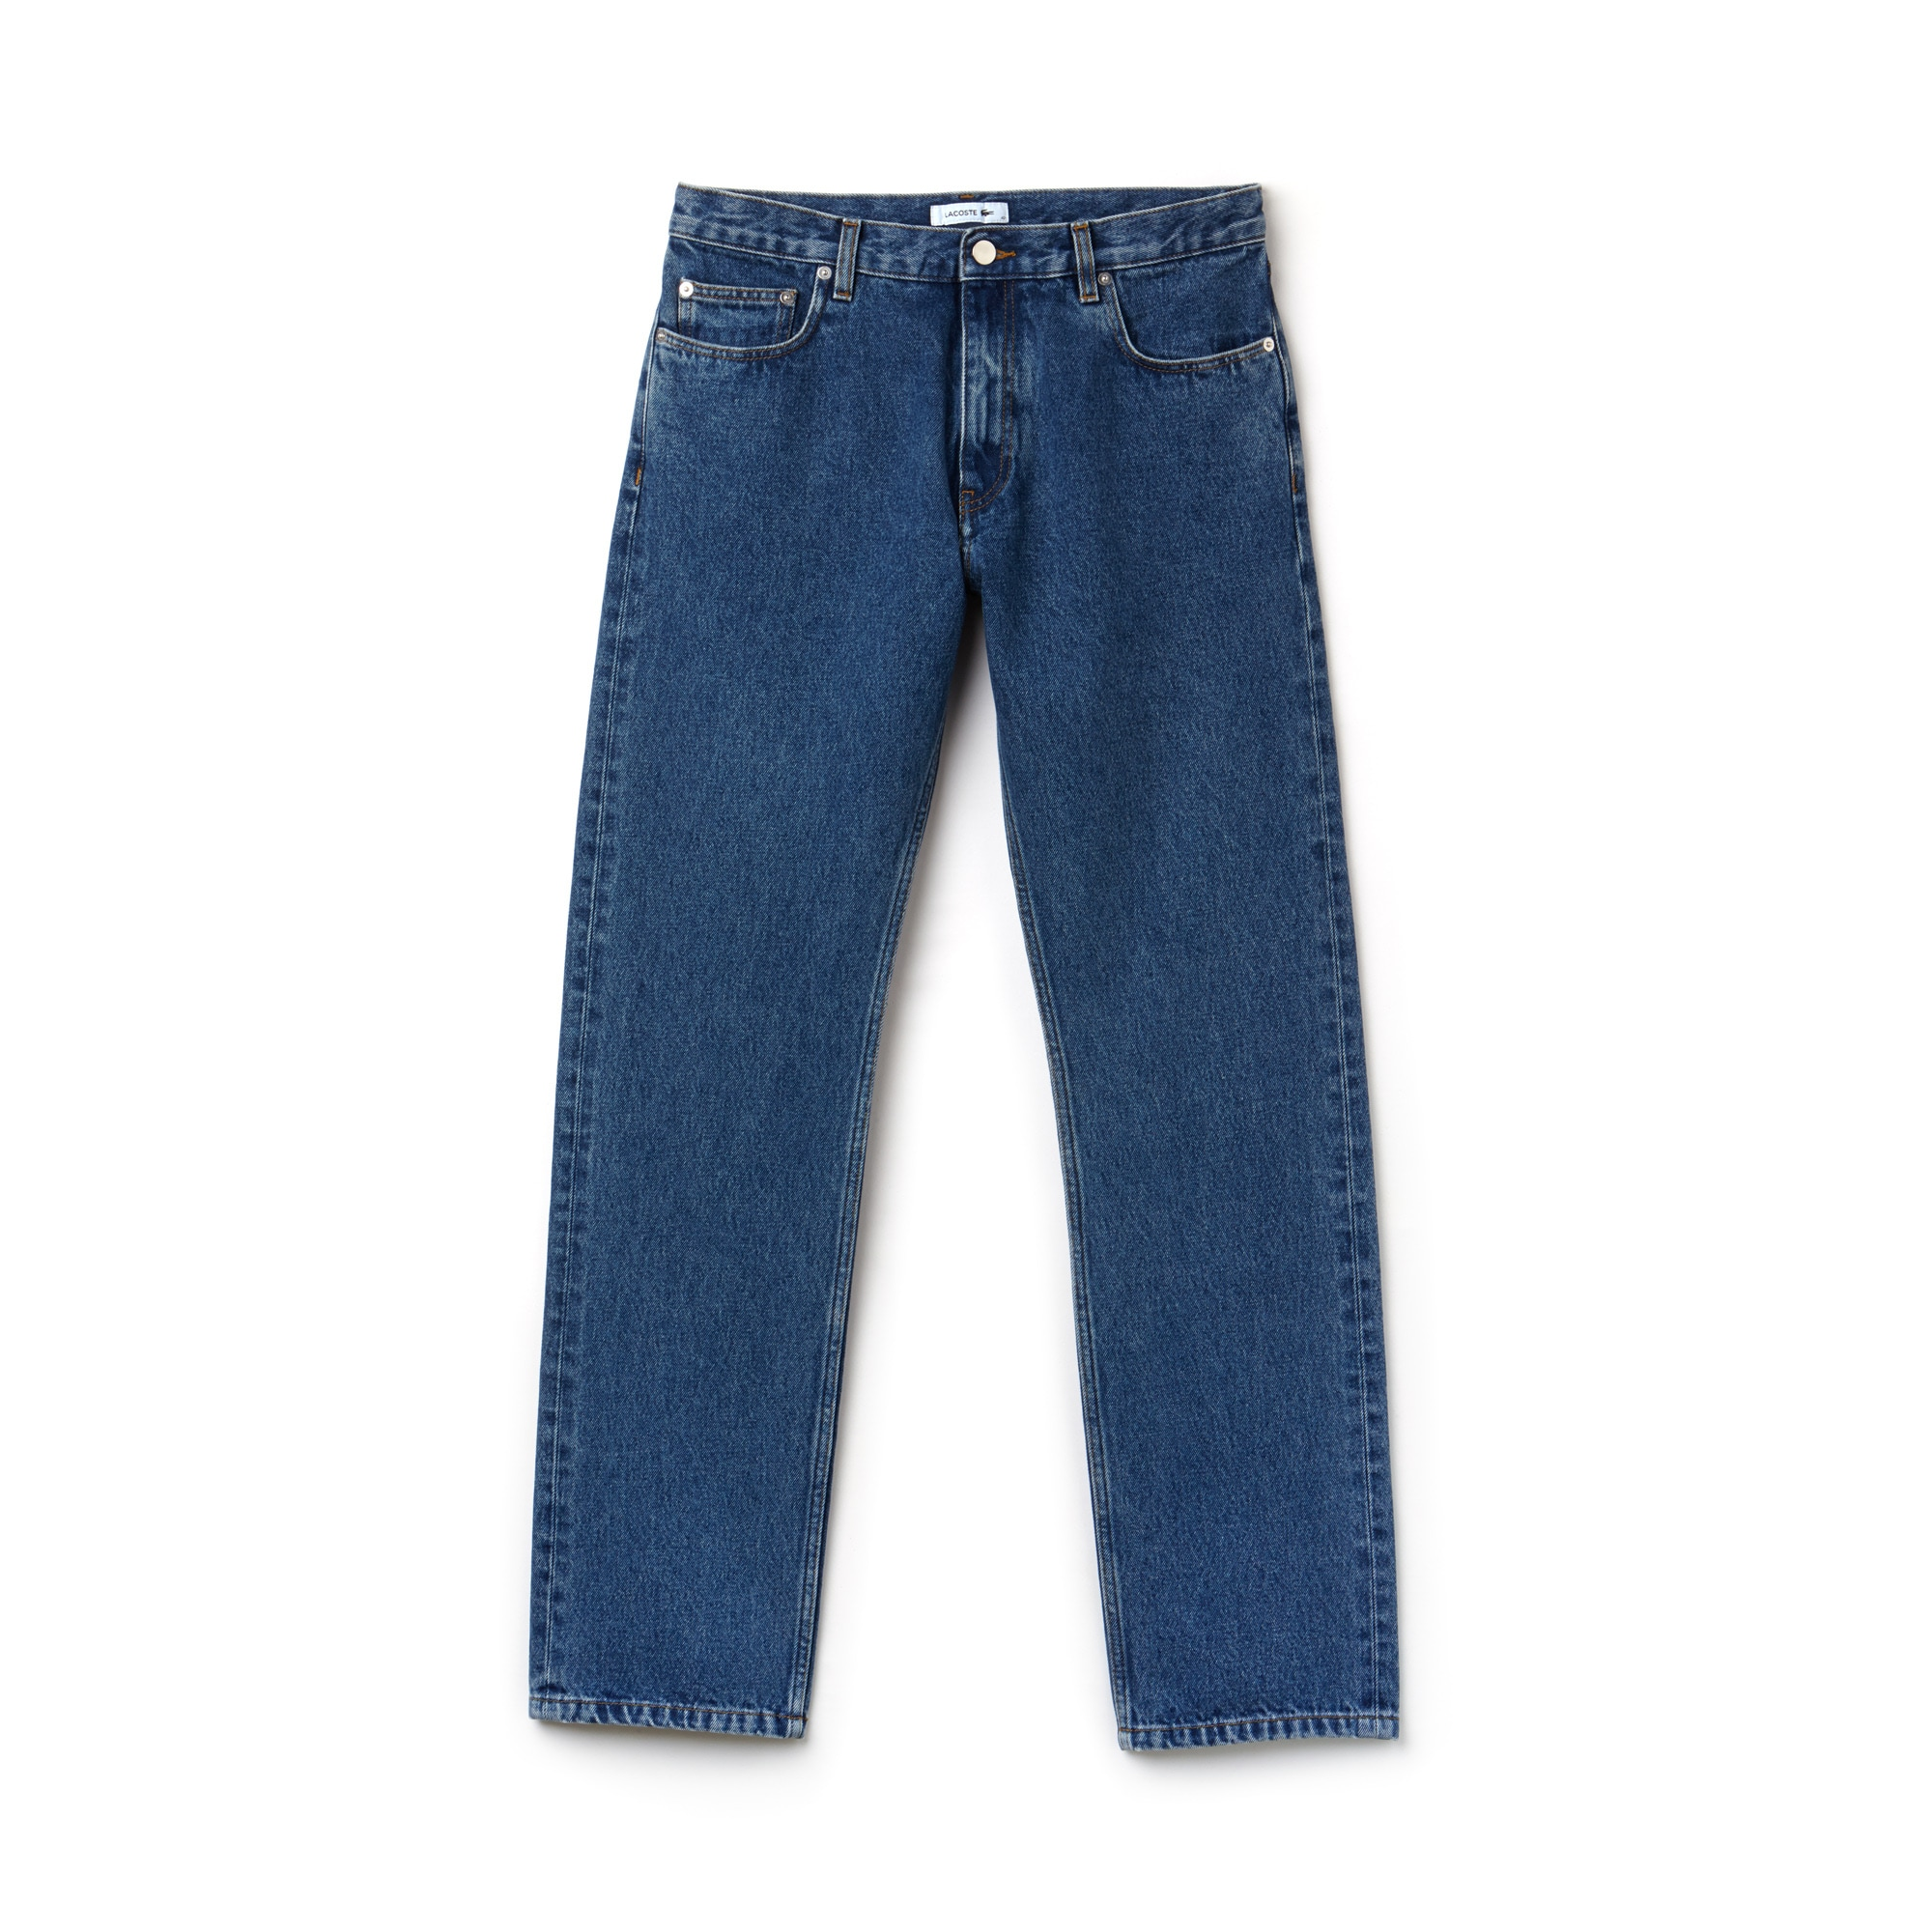 Men's Fashion Show Wide-Leg 5-pocket Jeans